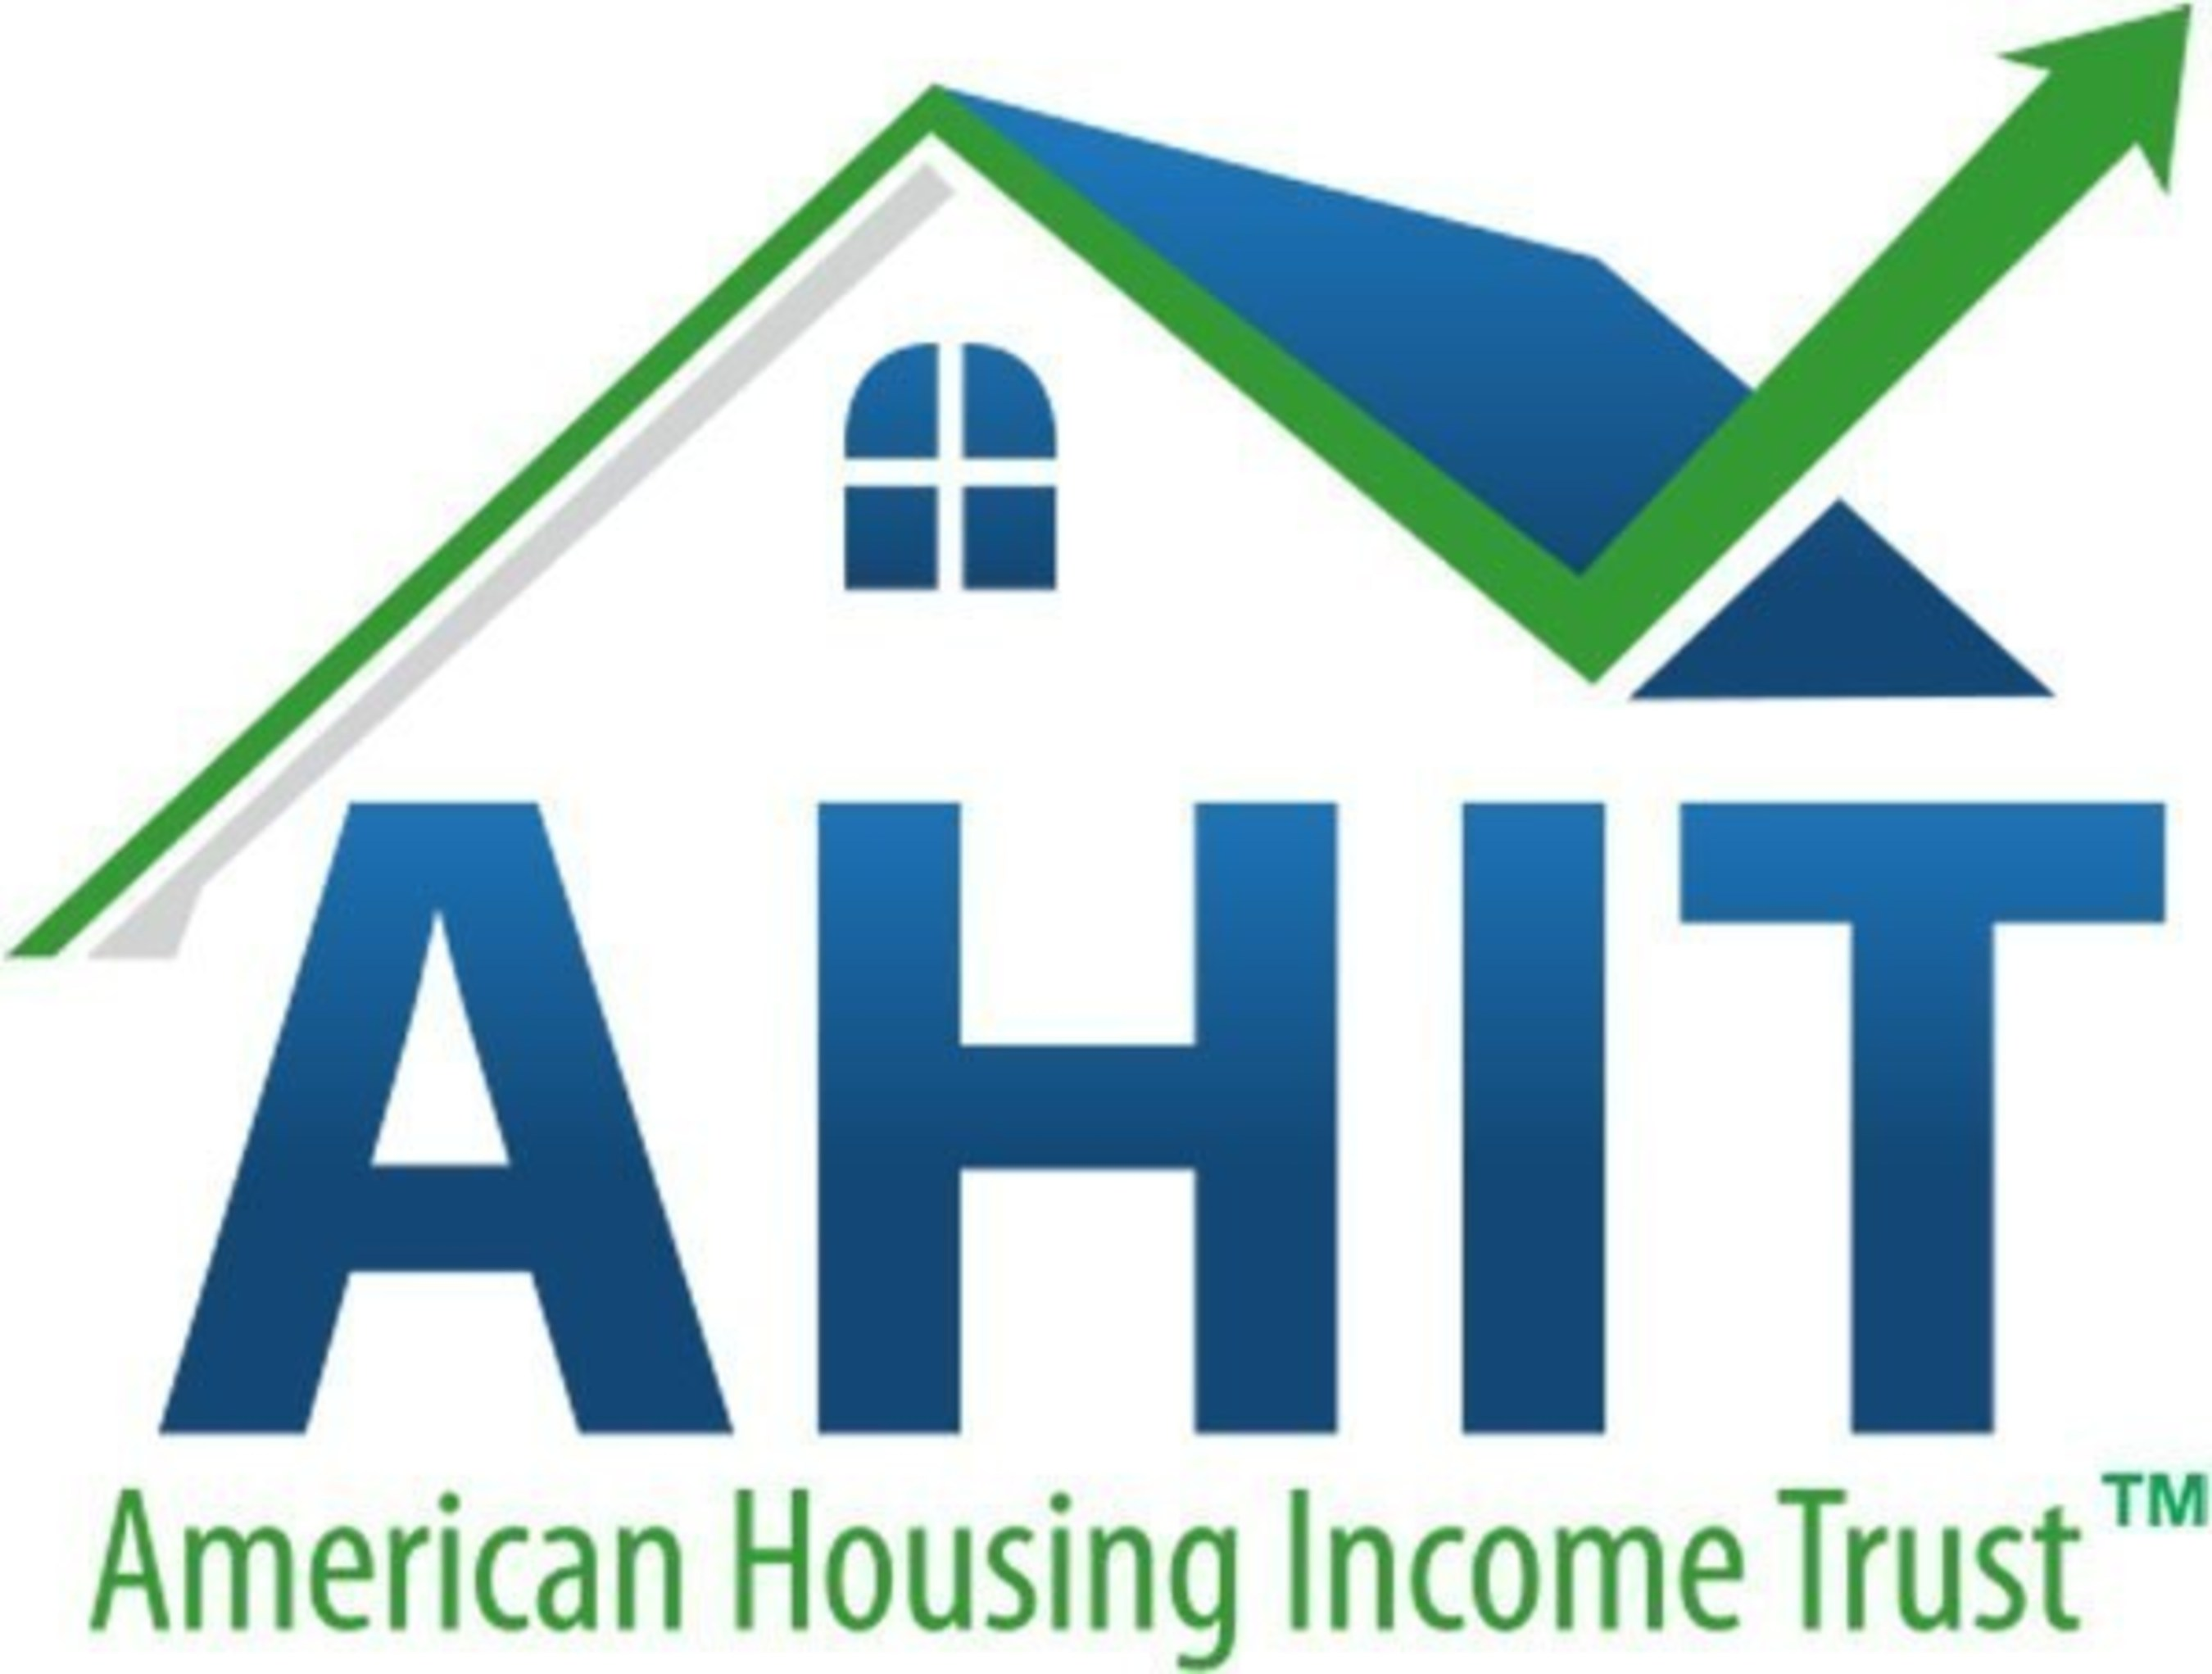 American Housing Income Trust To Be Featured On Designing Spaces